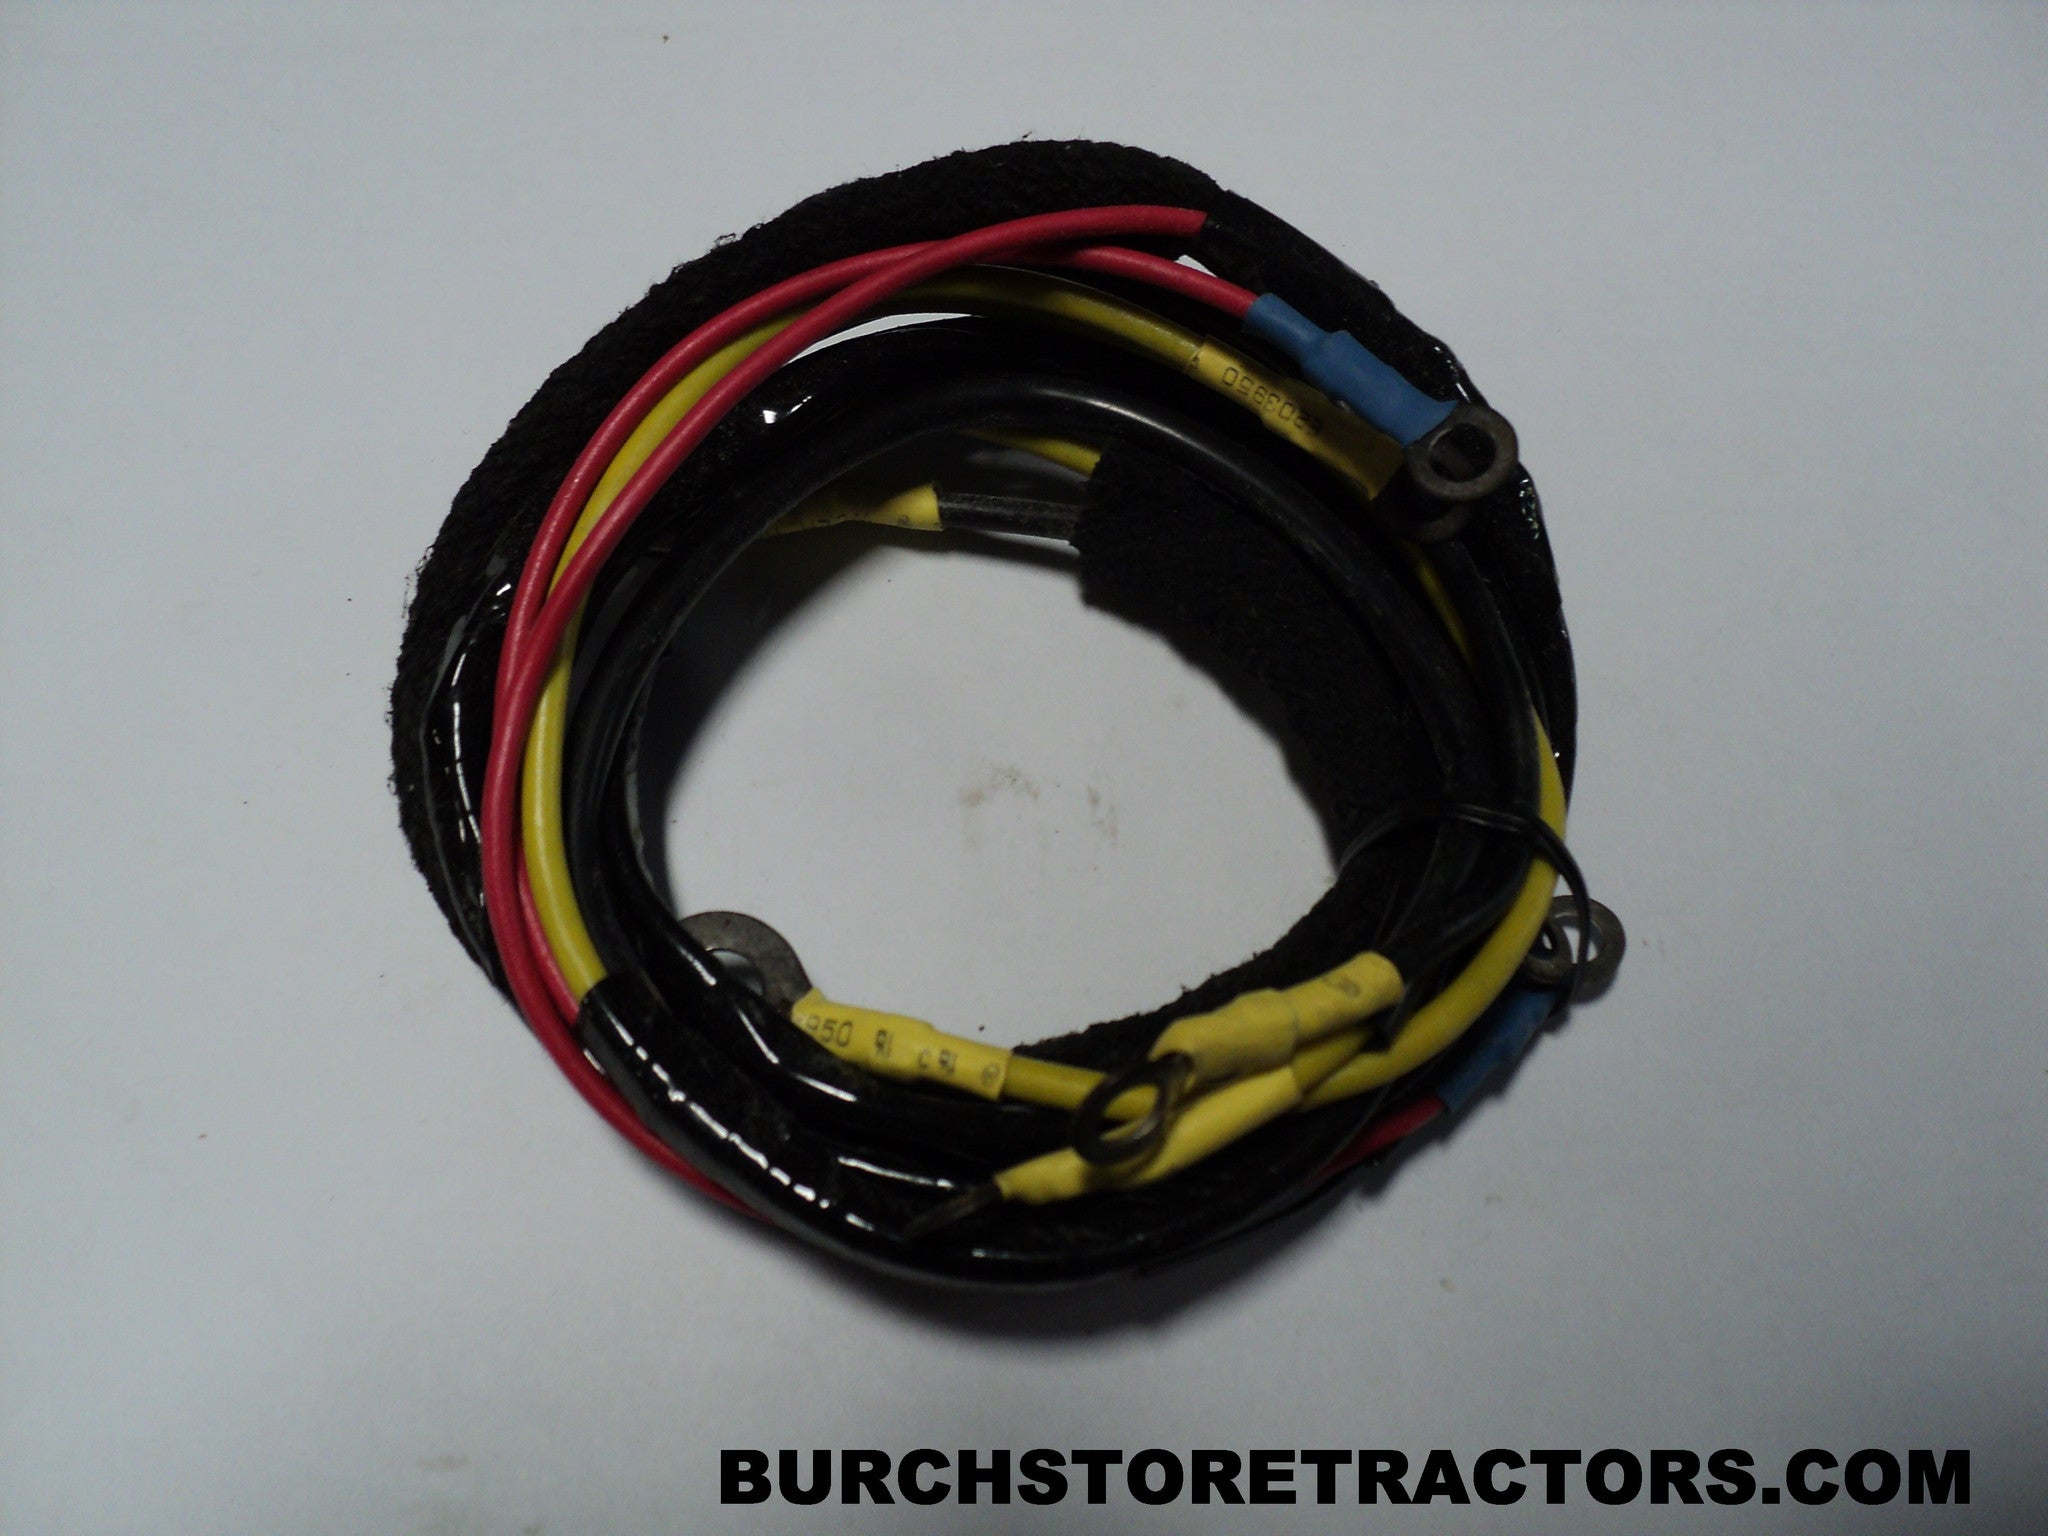 New Wiring Harness For Ford 9n 2n Tractors 2n14401 Free Shipping Tractor Burch Store